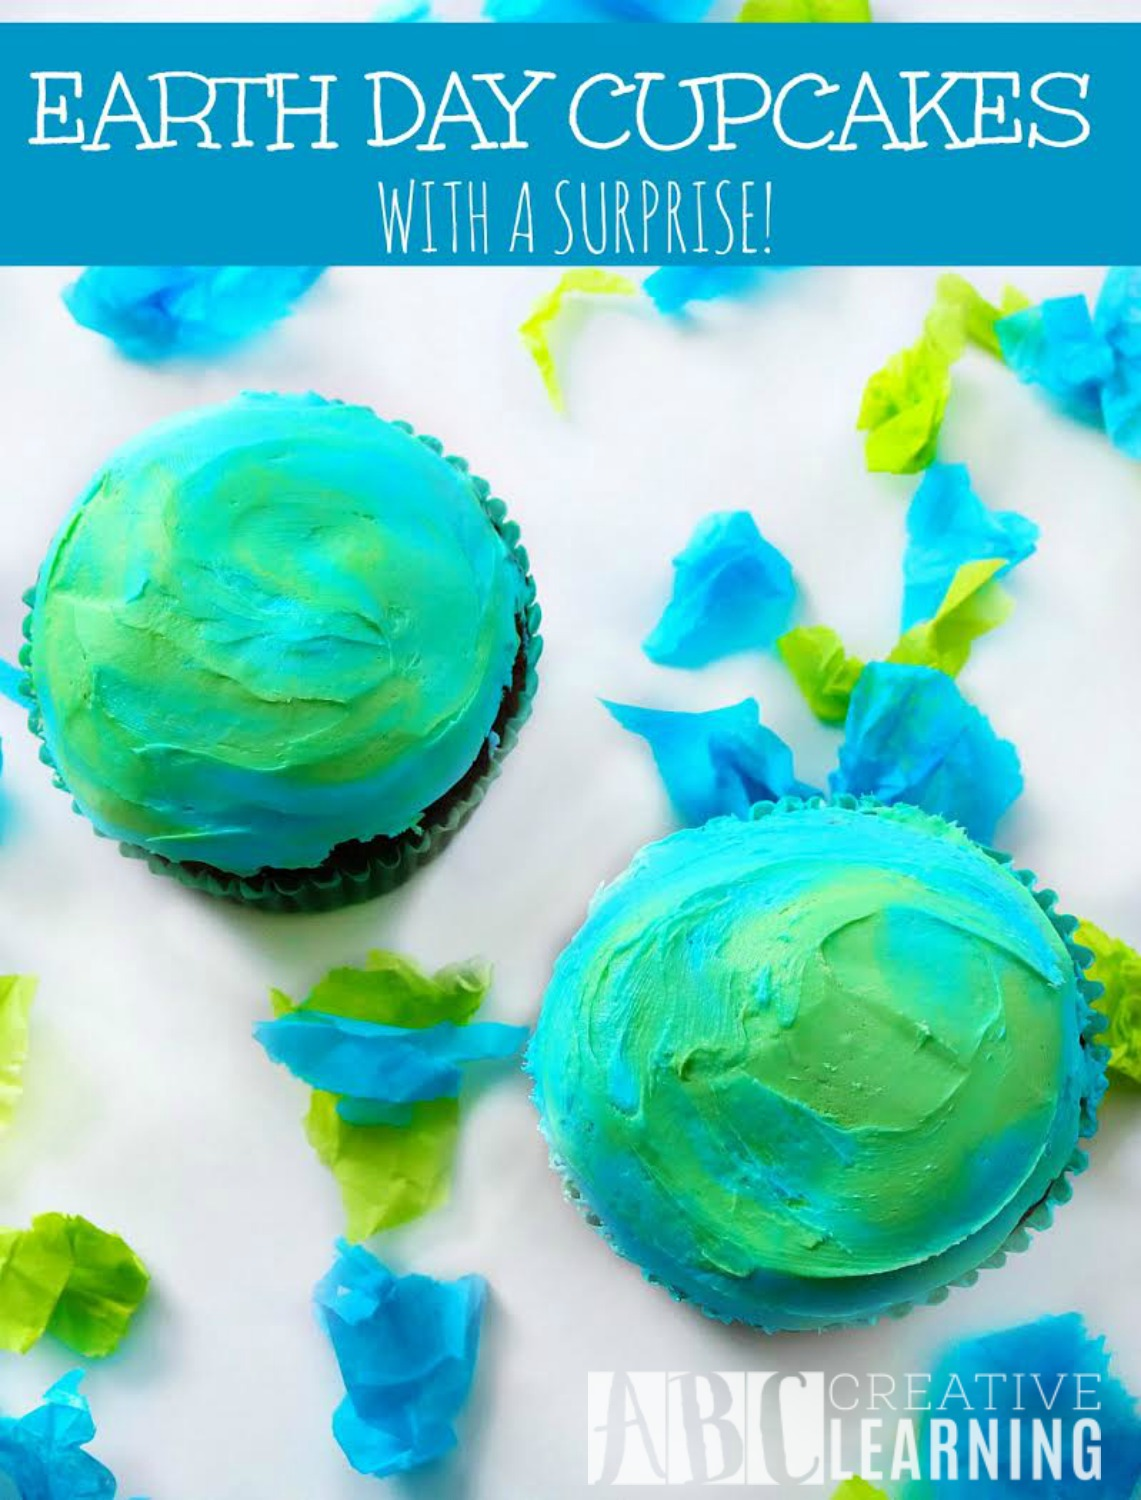 Earth Day Cupcakes With A Surprise